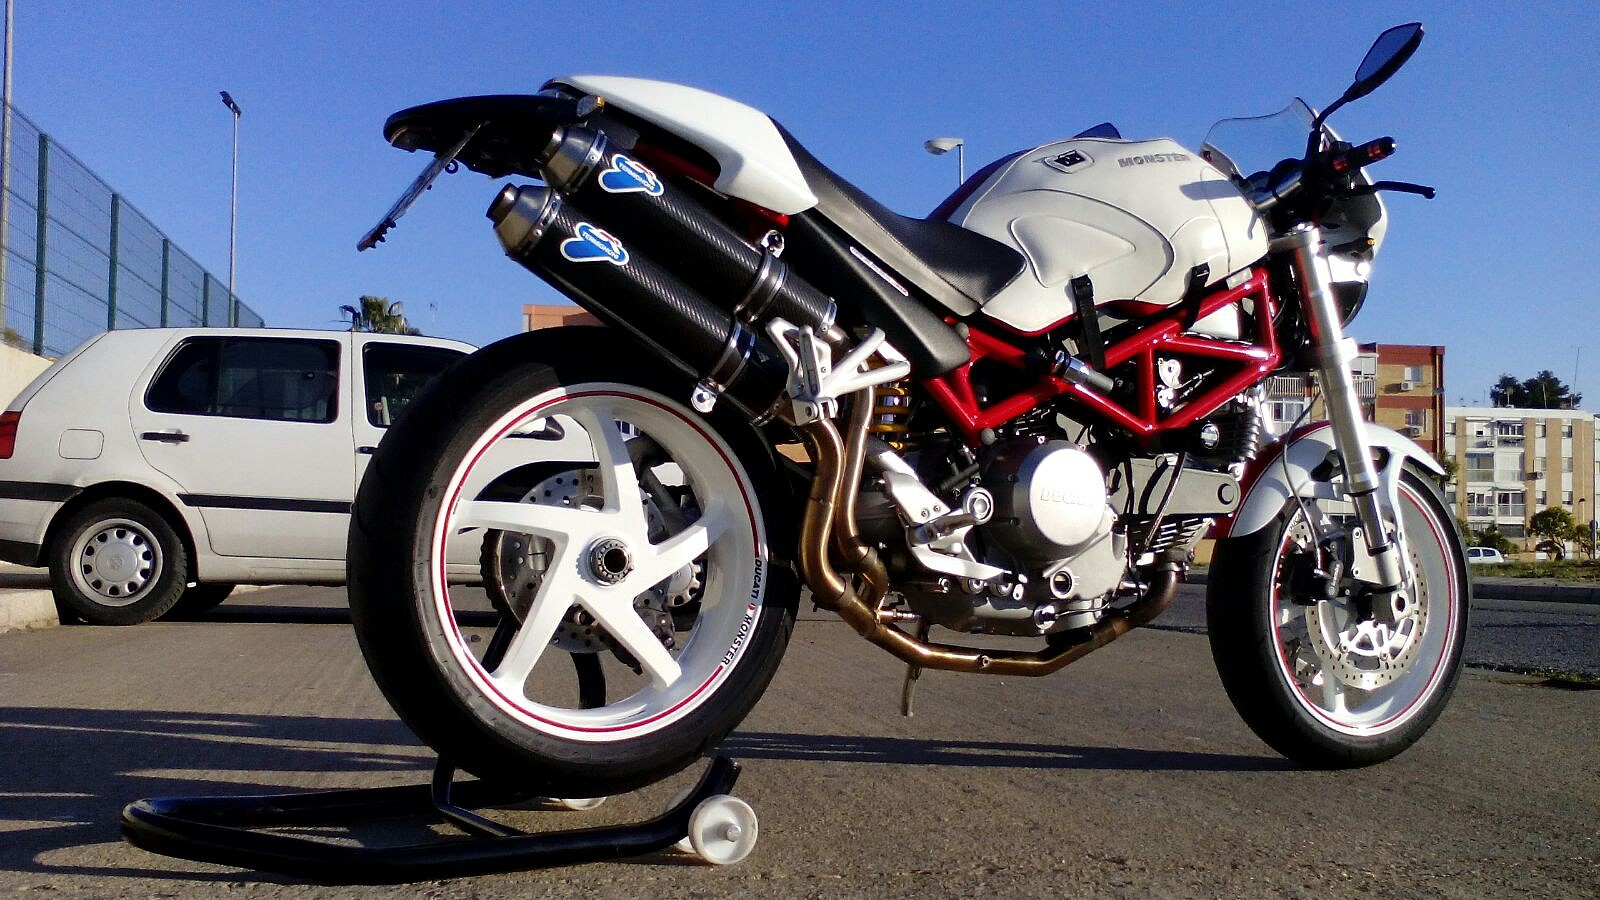 Vendo Ducati Monster S2R 800 Fa89b2c65e3dcaba75e33564fb510f4co